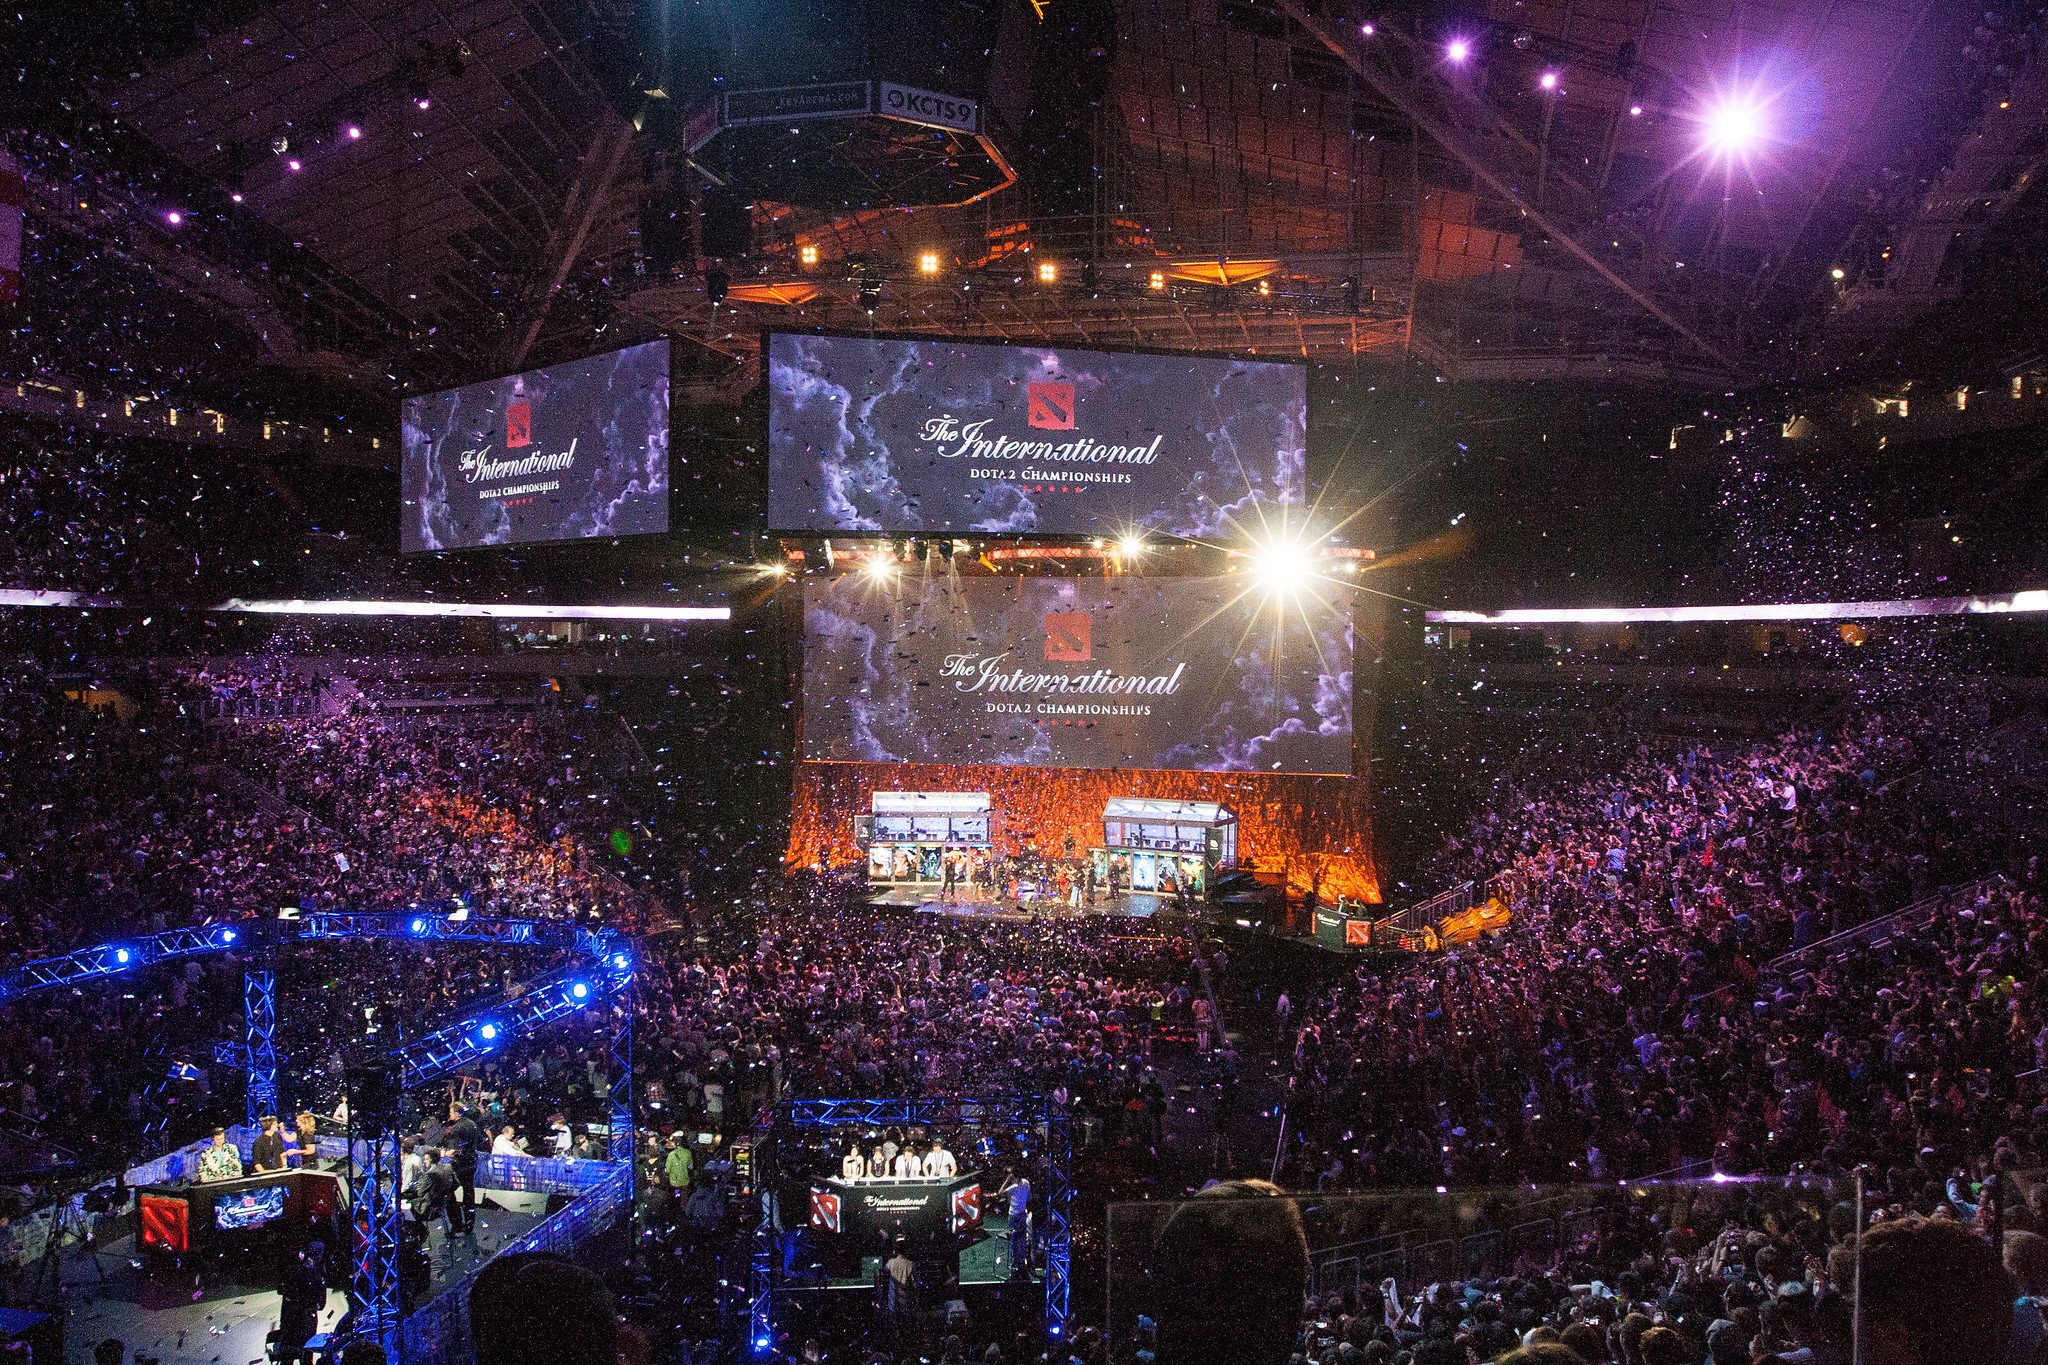 Dota 2 International at the arena